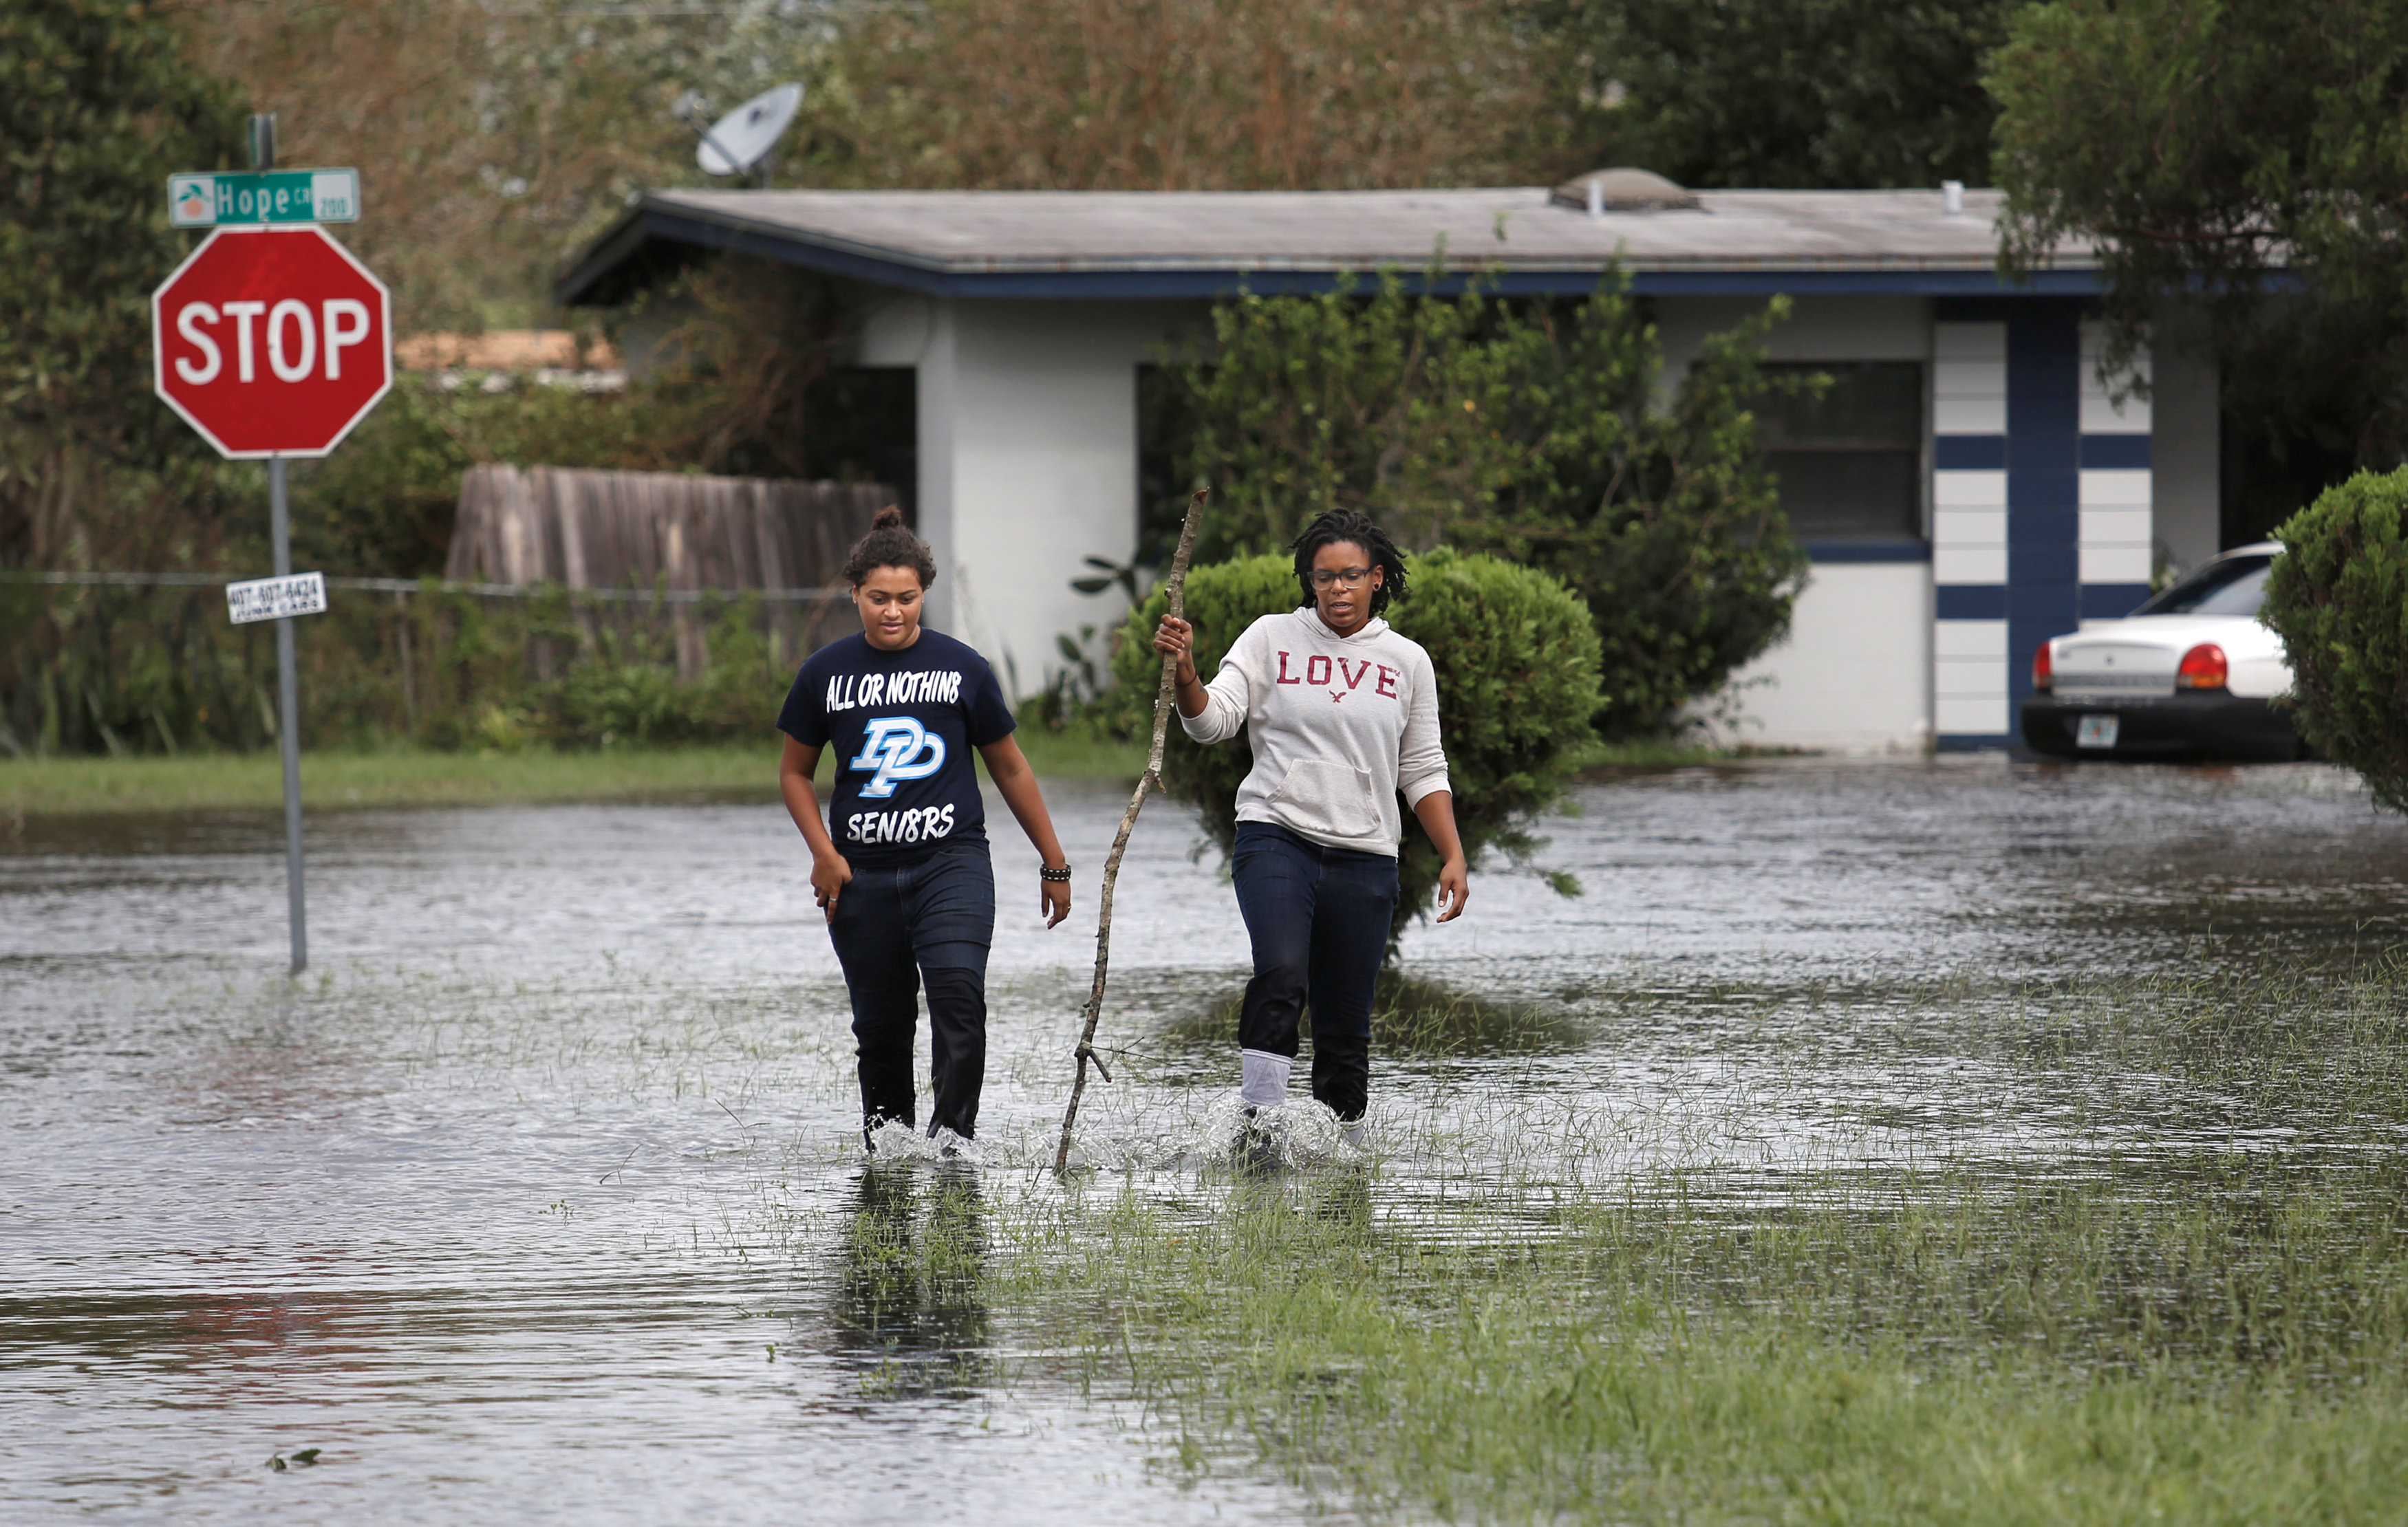 Residents walk through flood waters left in the wake of Hurricane Irma in a suburb of Orlando, Florida, U.S., September 11, 2017. REUTERS/Gregg Newton